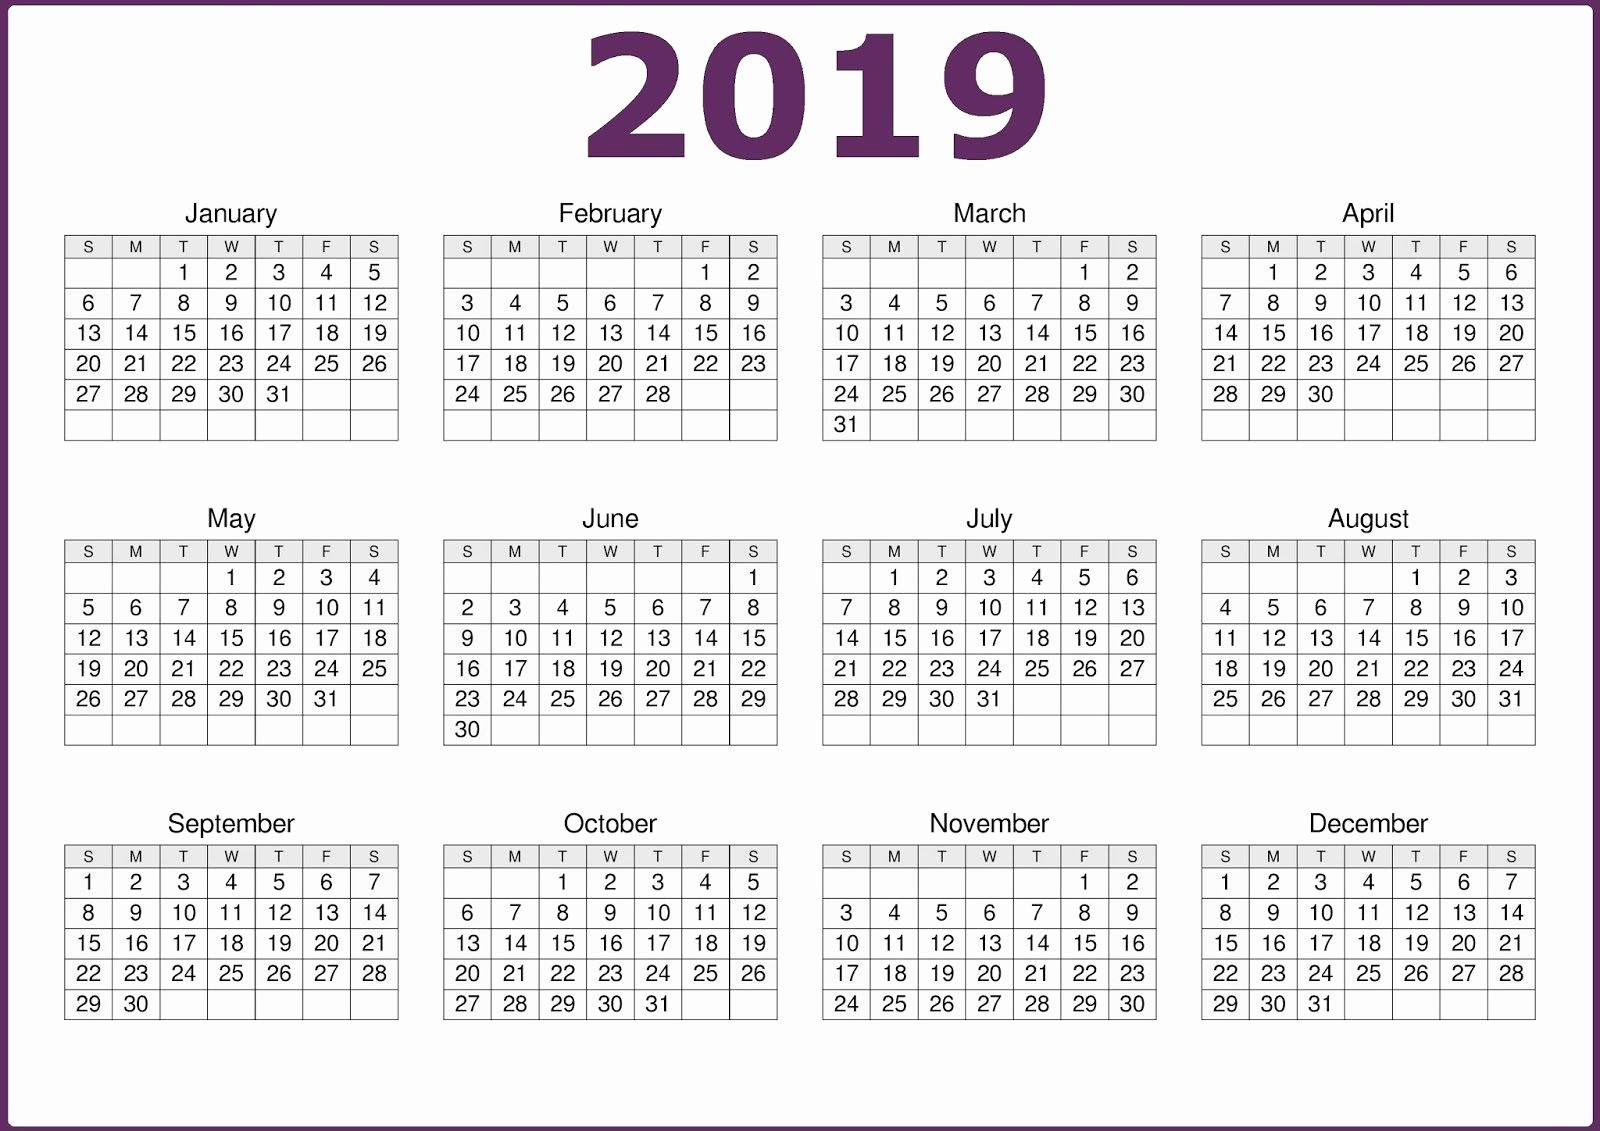 2019 Printable Calendar by Month Inspirational 2019 E Page Printable Calendar Download